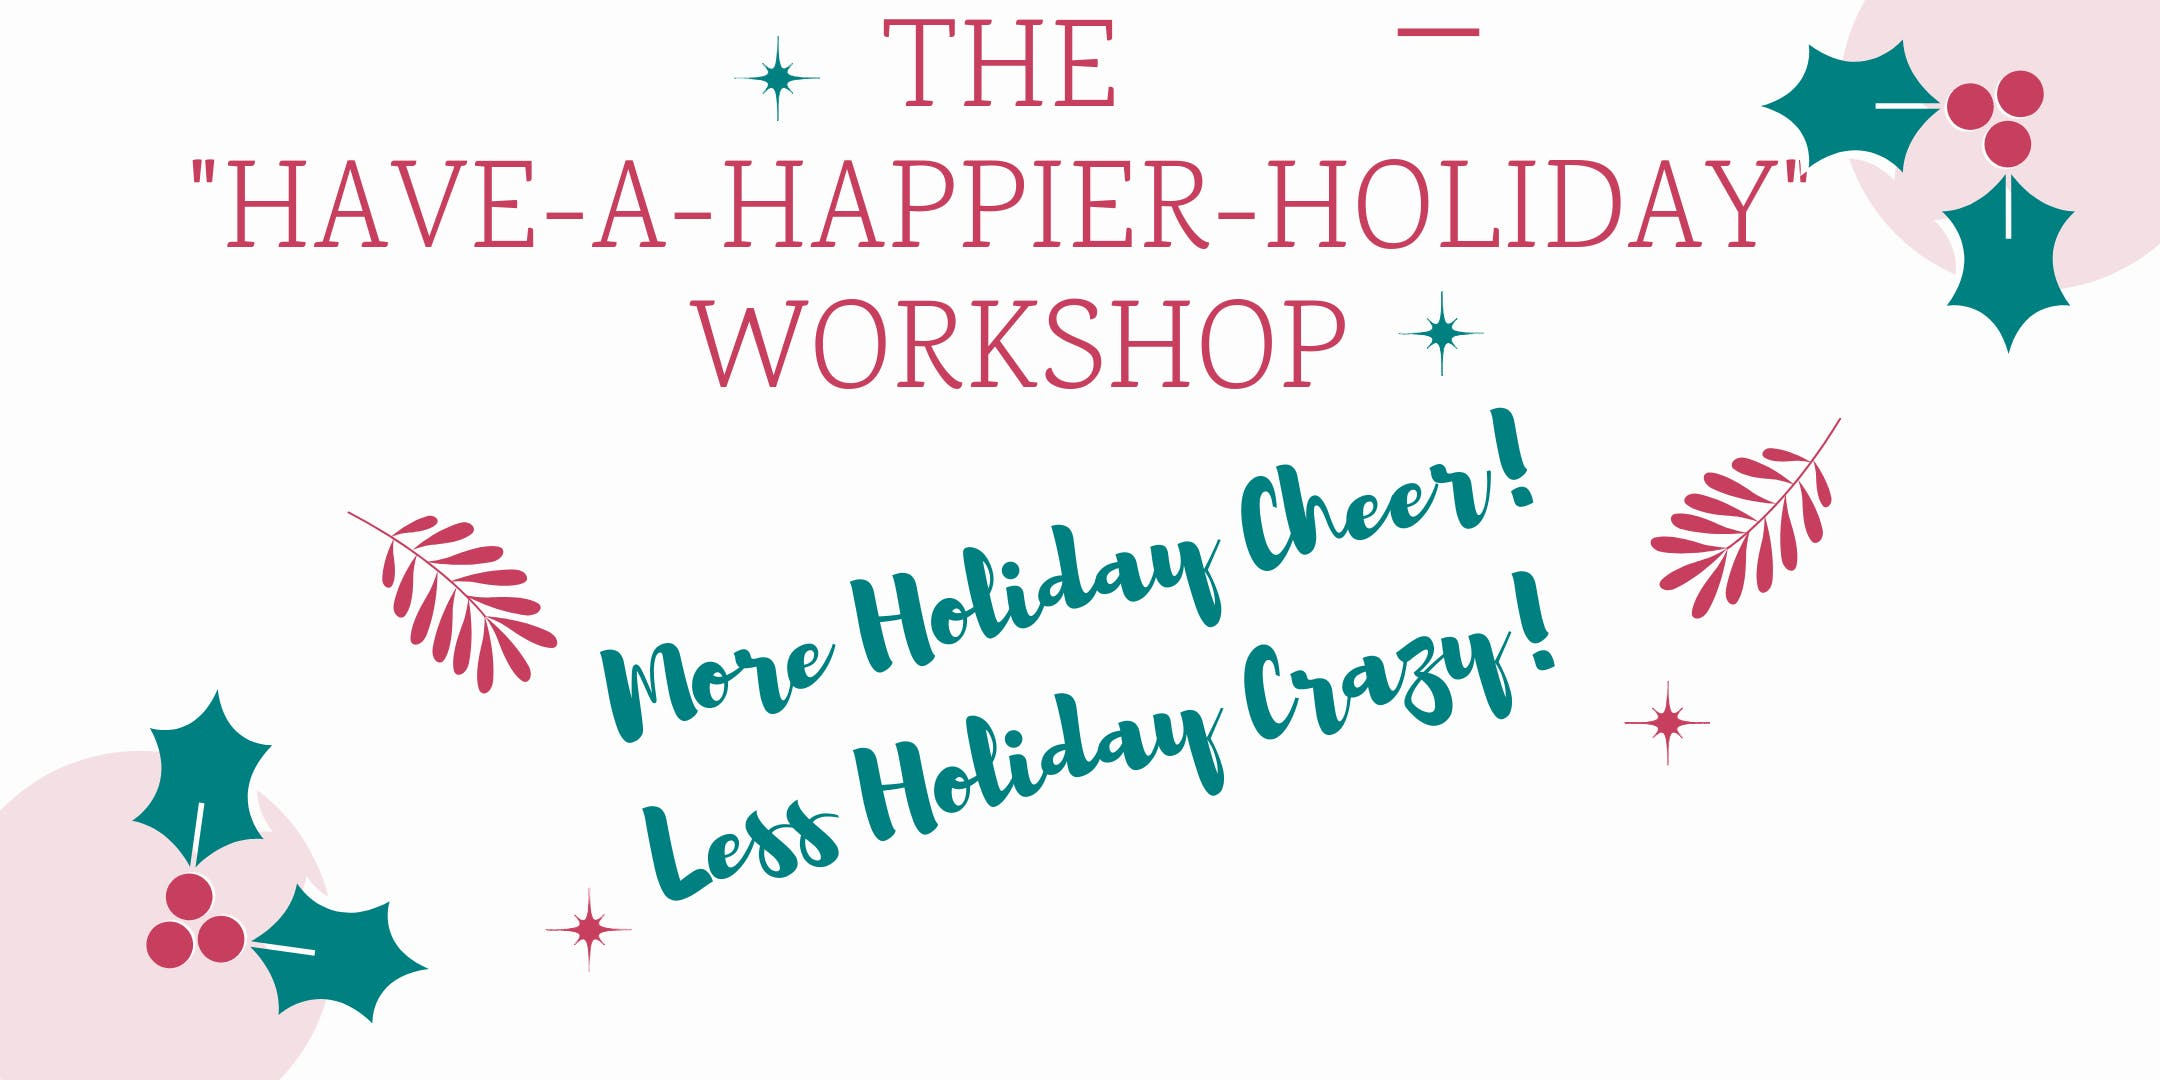 The Have a Happier Holiday Workshop: More Holiday Cheer, Less Holiday Crazy